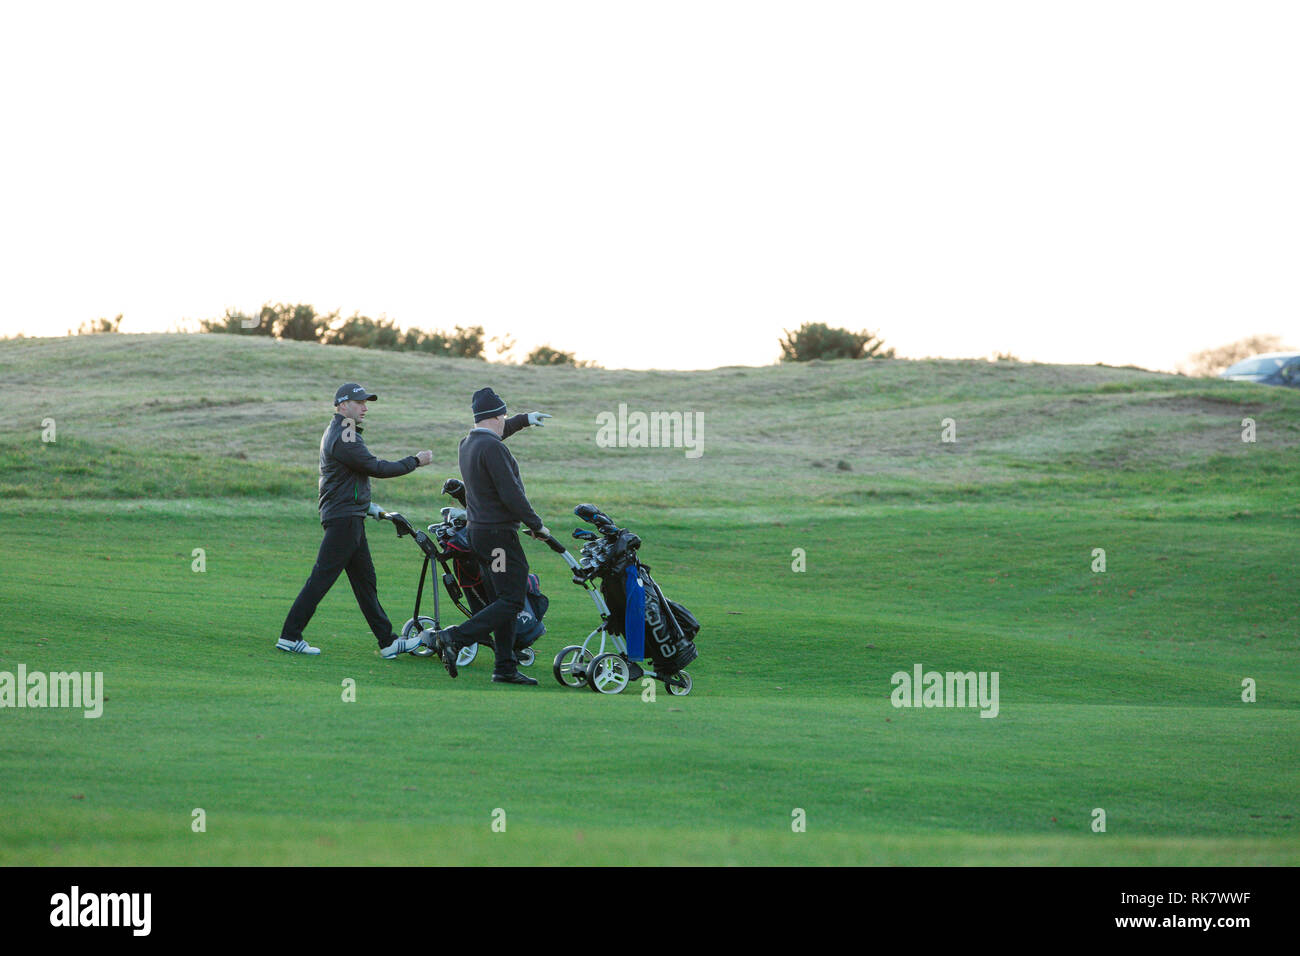 Two men wheeling trolleys with their golf bags through greens on the Carton House Golf Course in Maynooth, County Kildare, Ireland - Stock Image